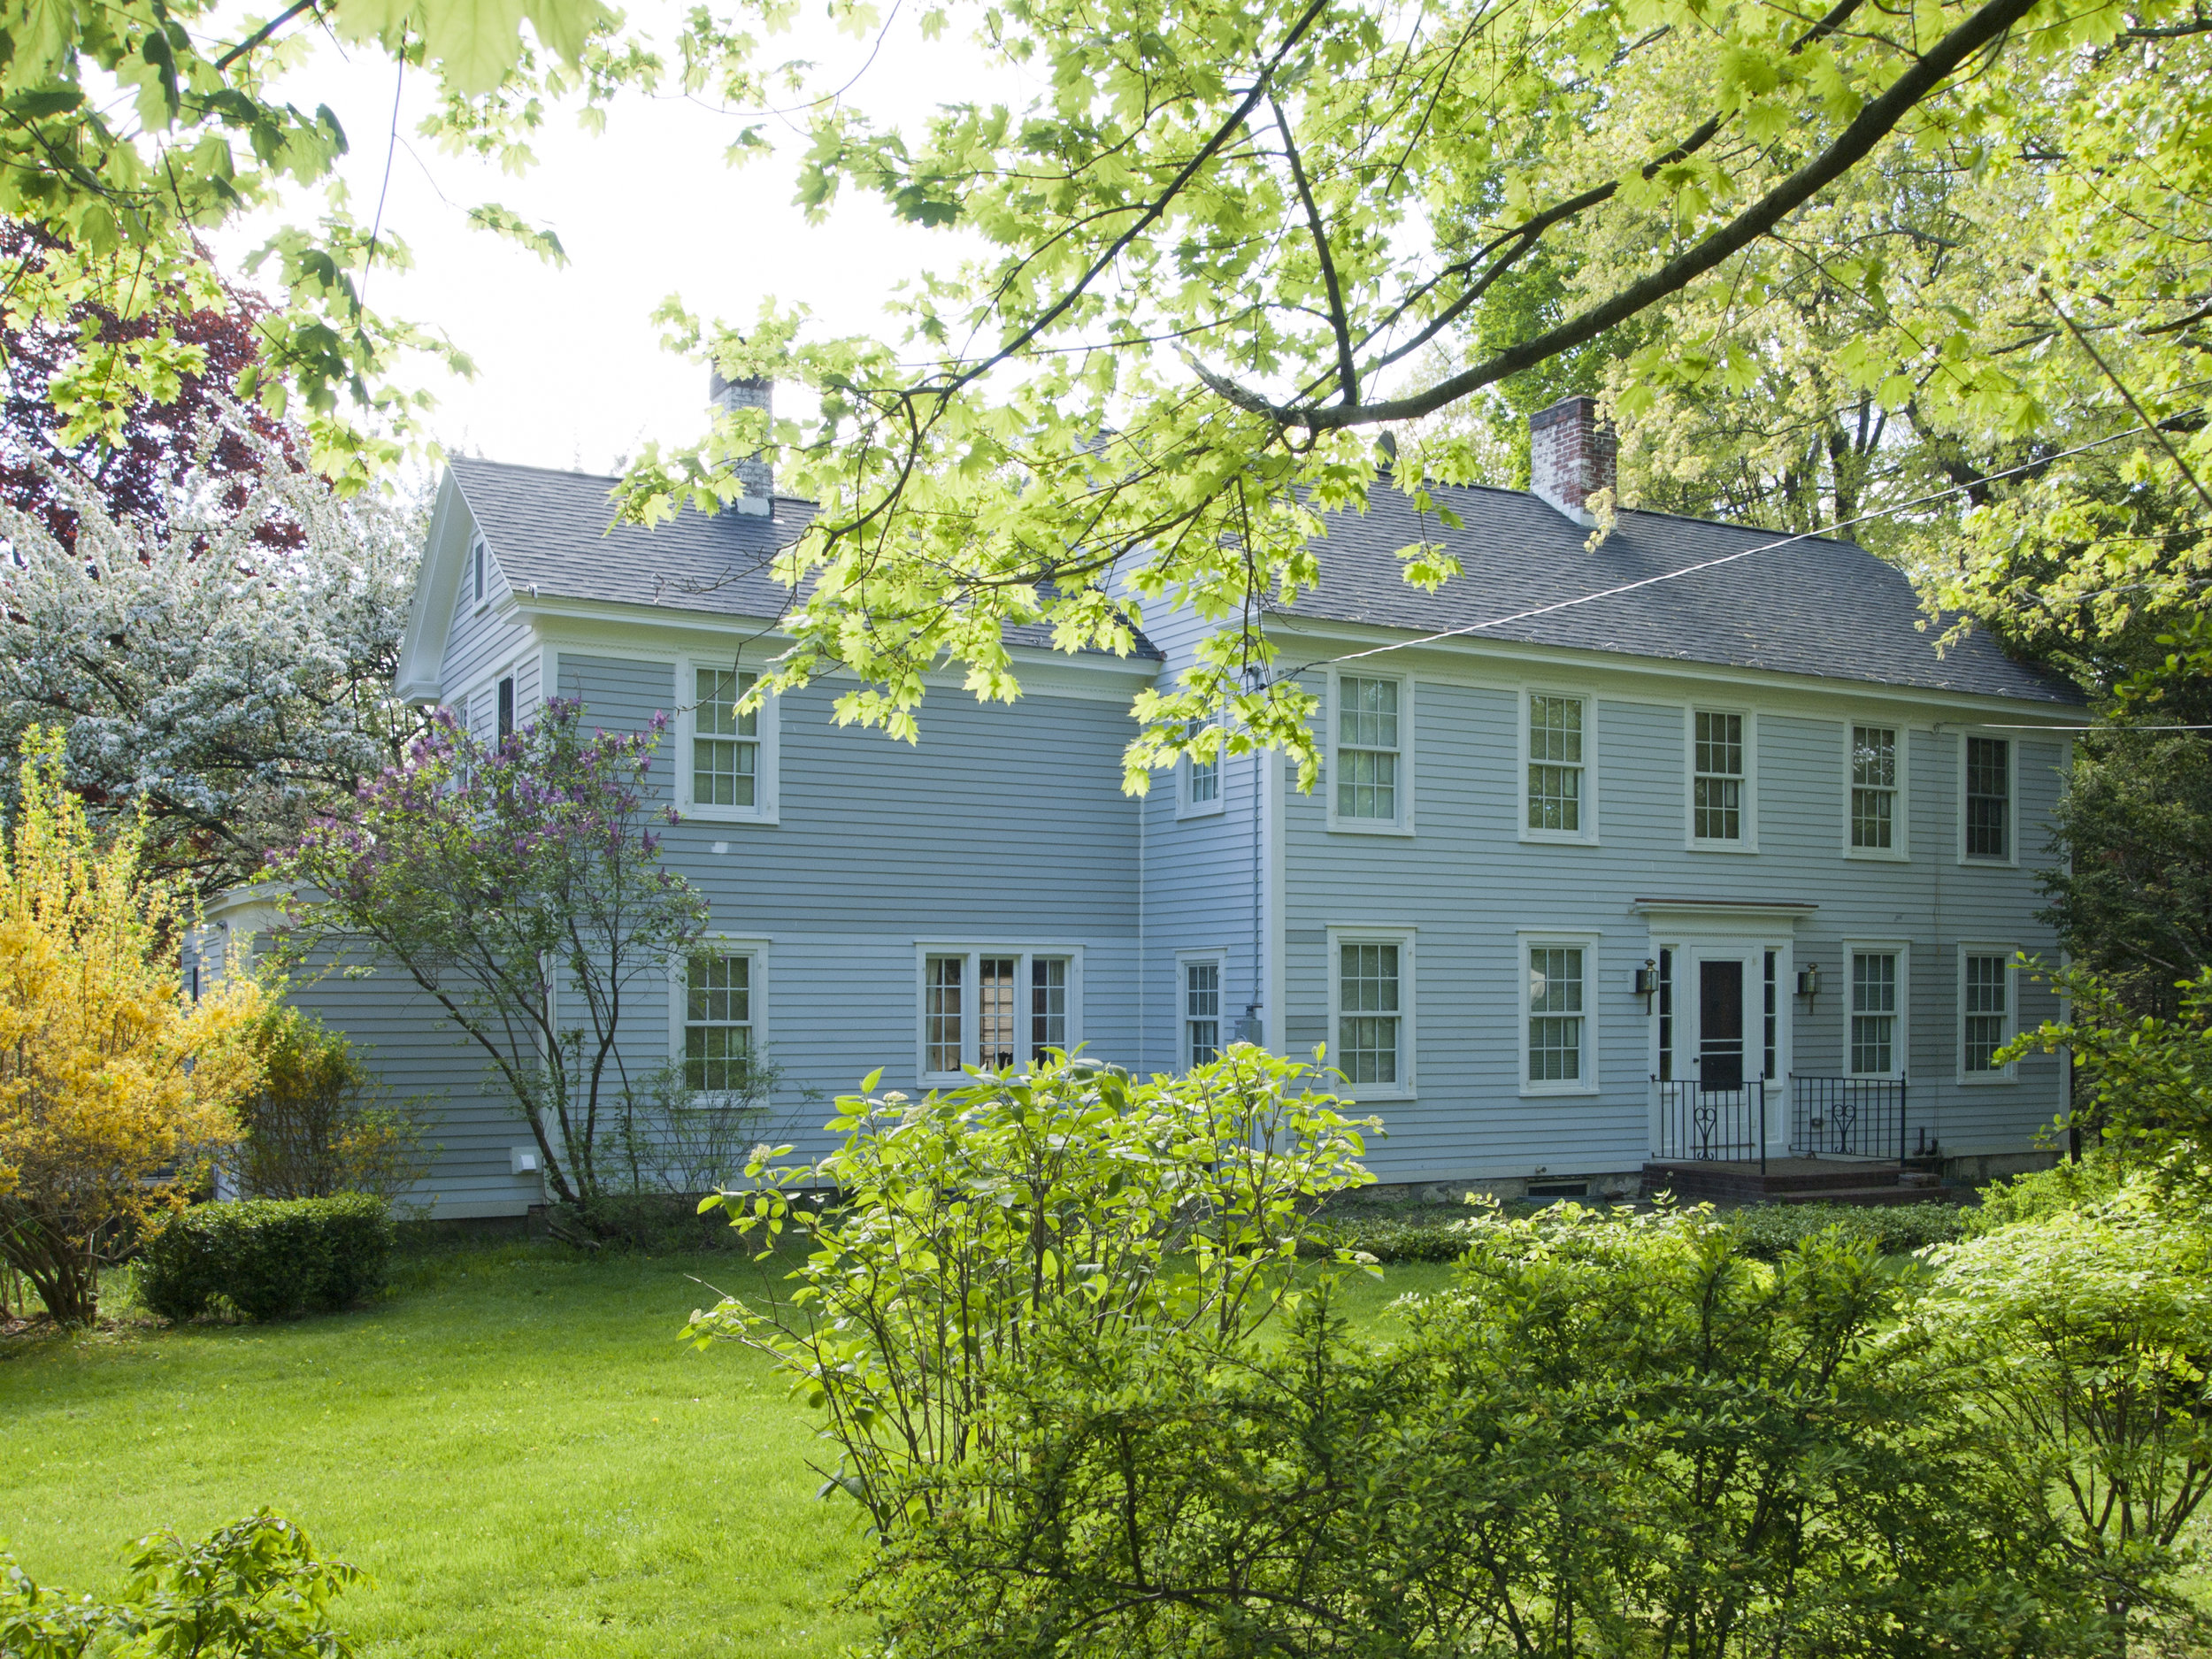 Anne Day listed as 459 469 Twin Lakes Rd. Windy Hill; CC thought Old Asylum House.jpg